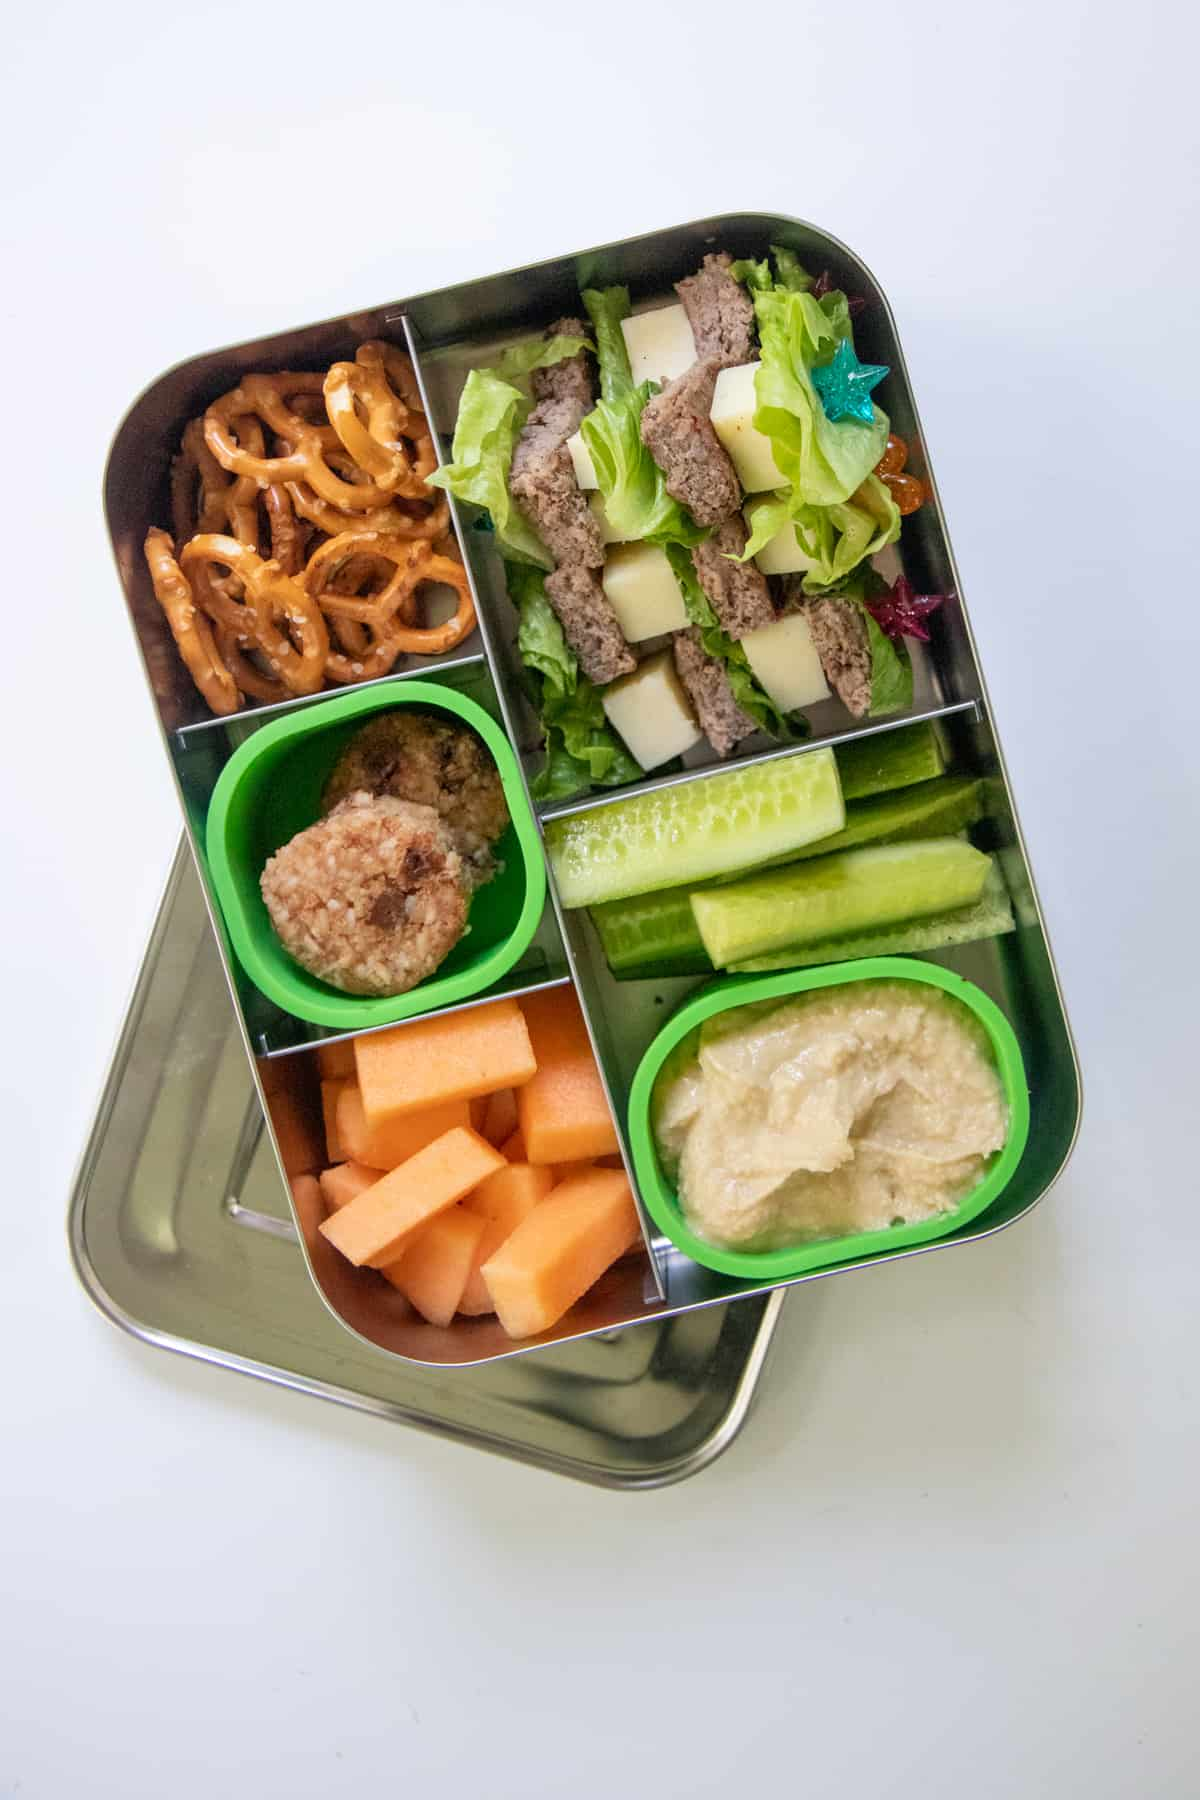 Stainless steel lunchbox filled with a school lunch idea: cheeseburger skewers with melon, pretzels, vegetables and hummus, and cookies